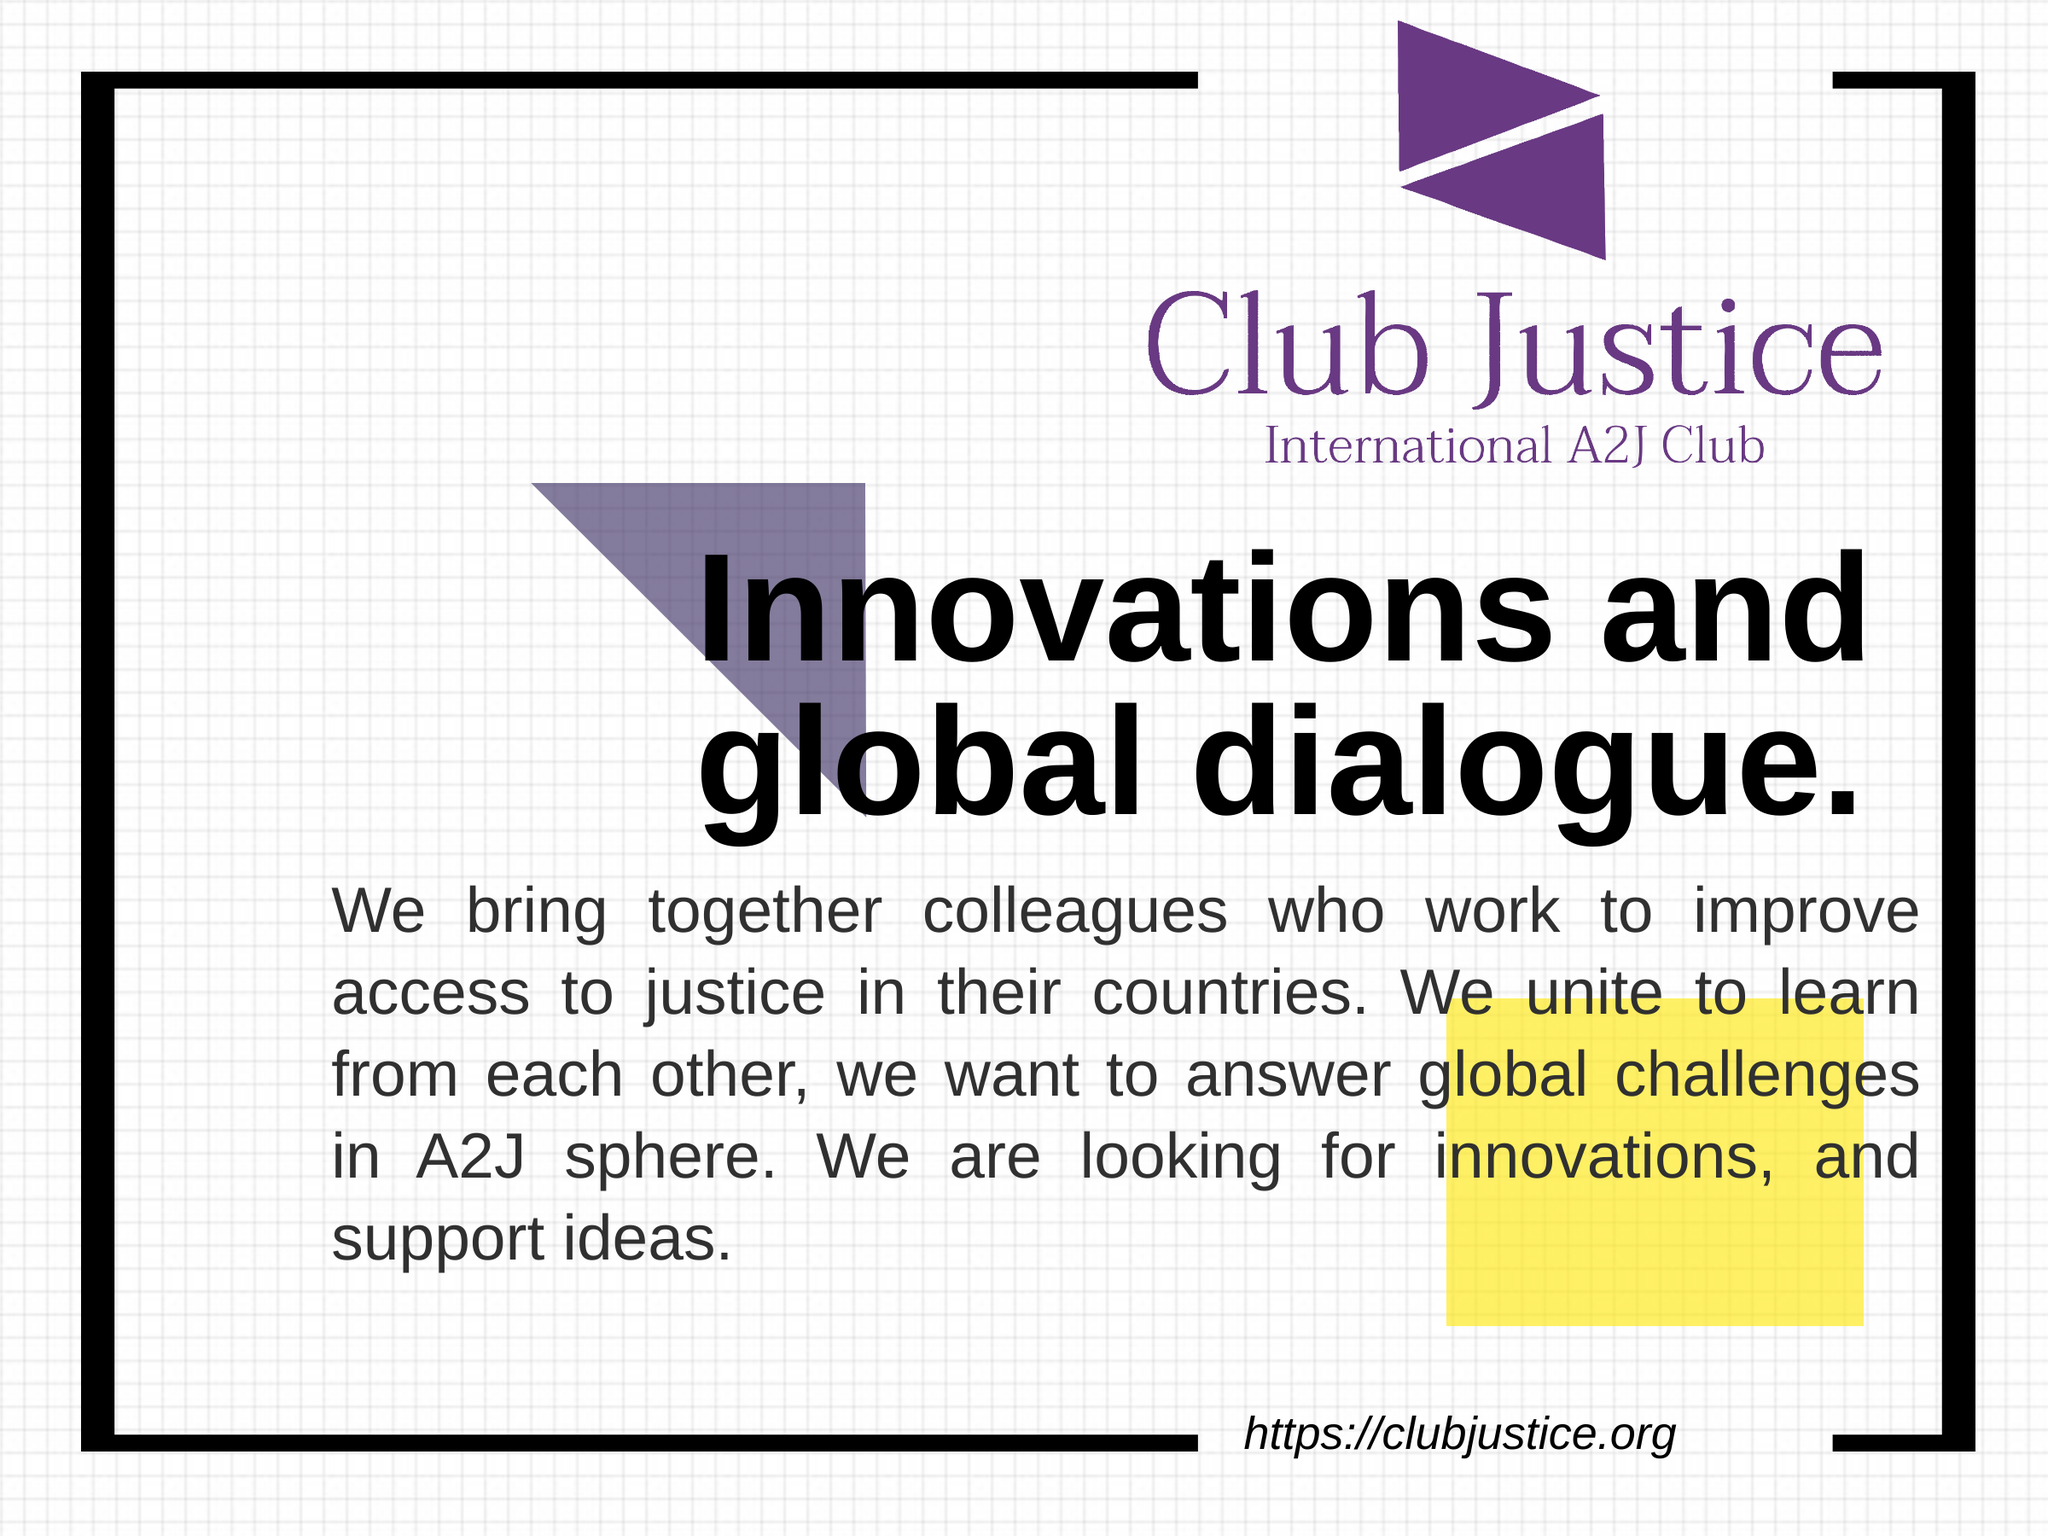 A2J Club Justice is Opening!